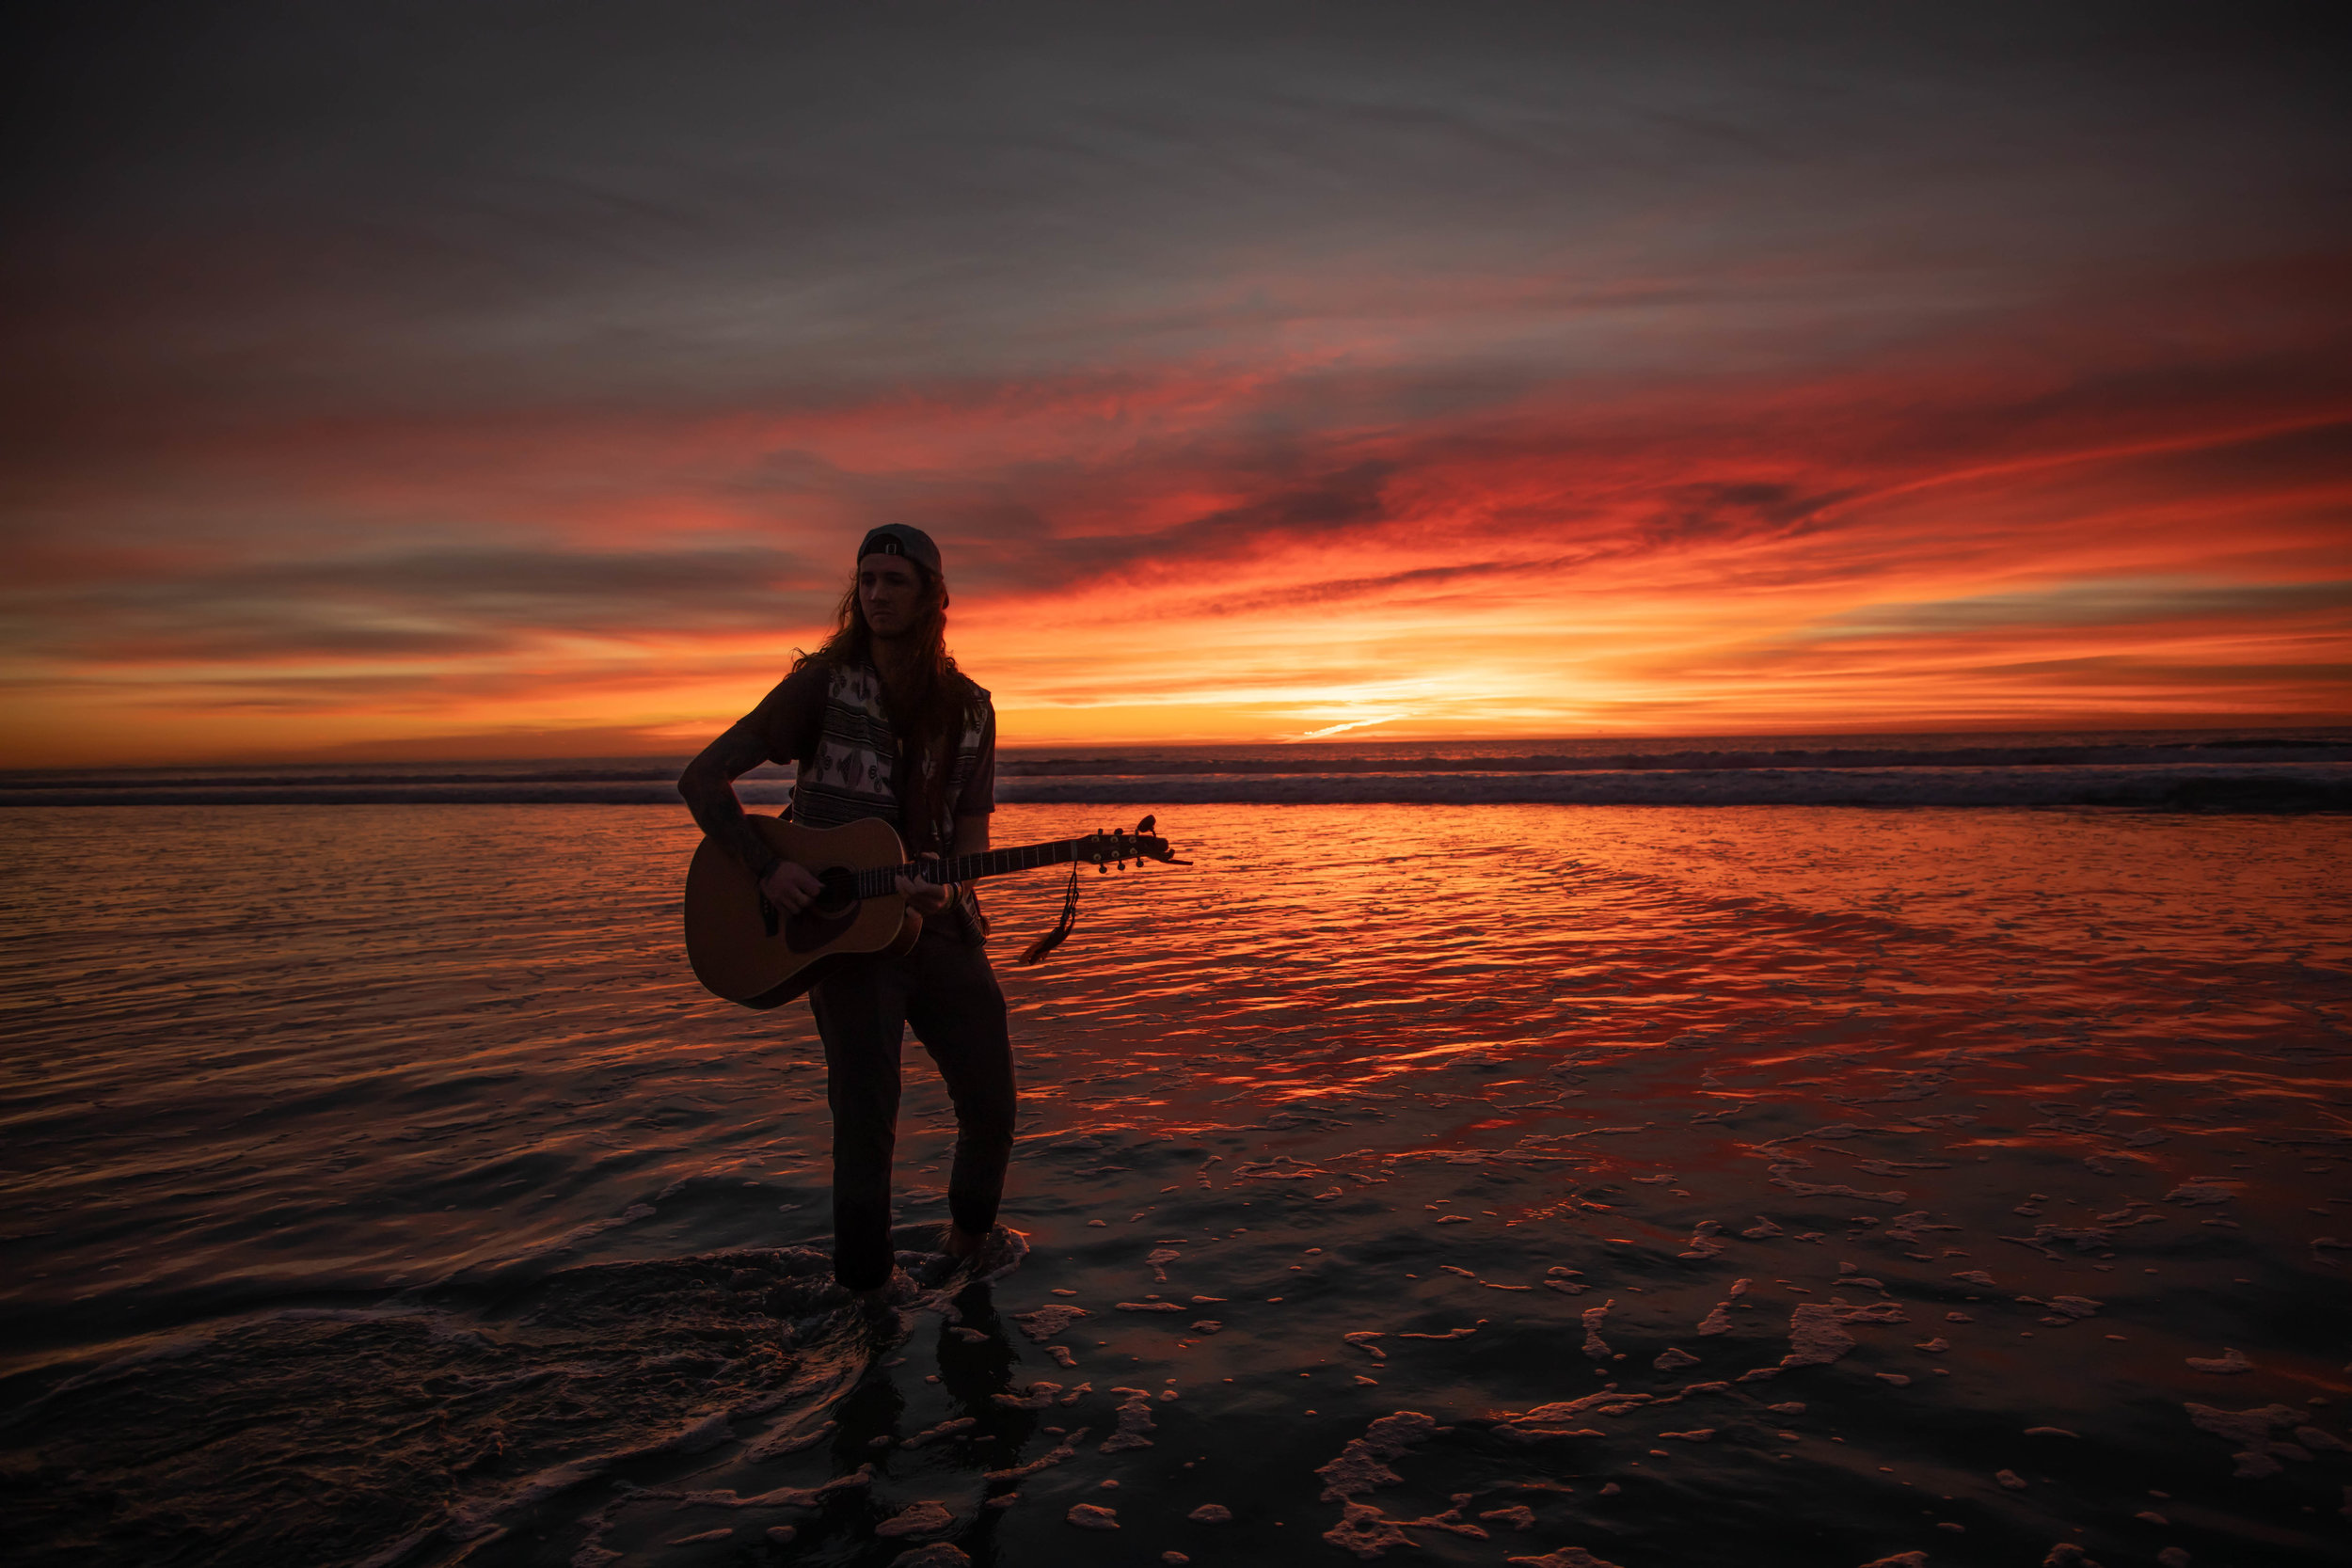 Sunset Symphony by Braeden Riehl